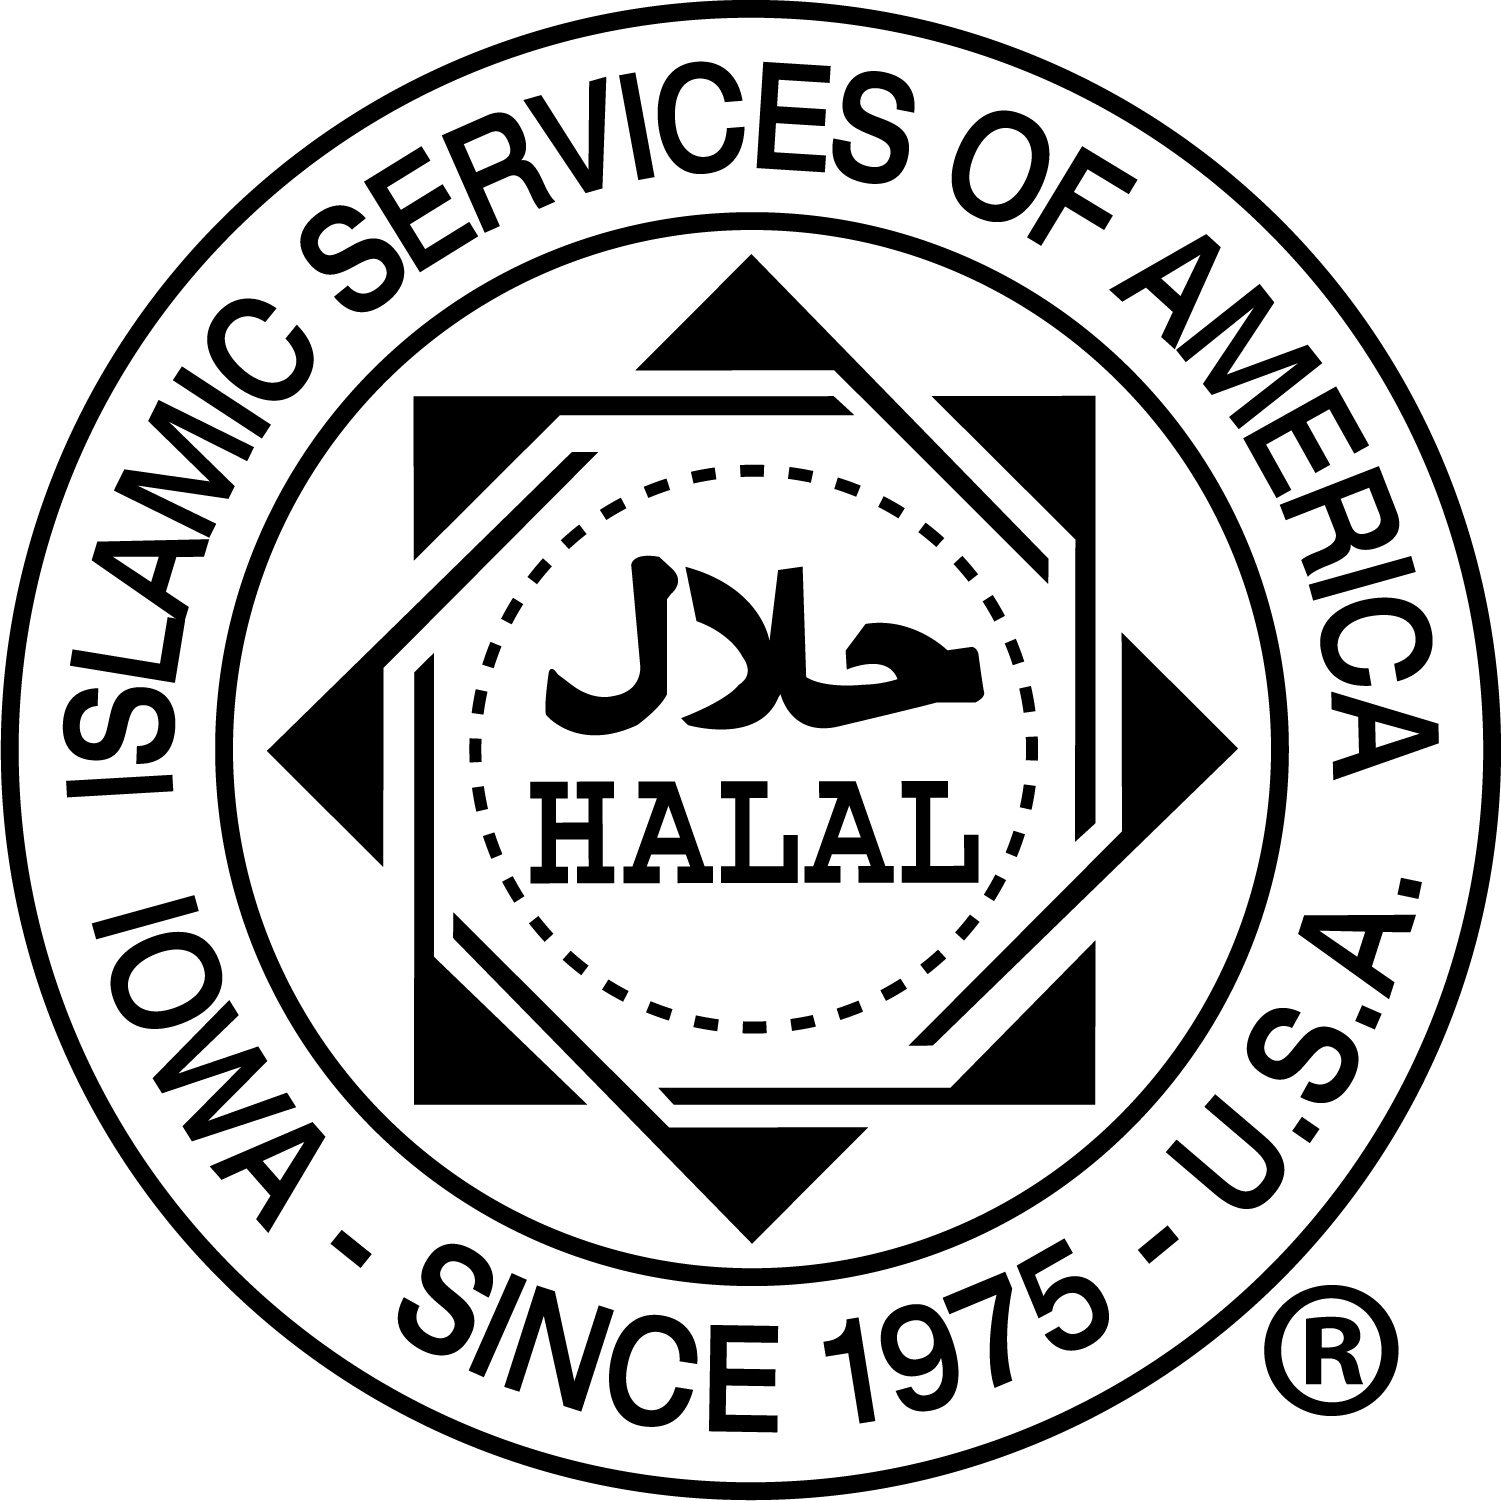 Fornazor International Receives Halal Certification For Its